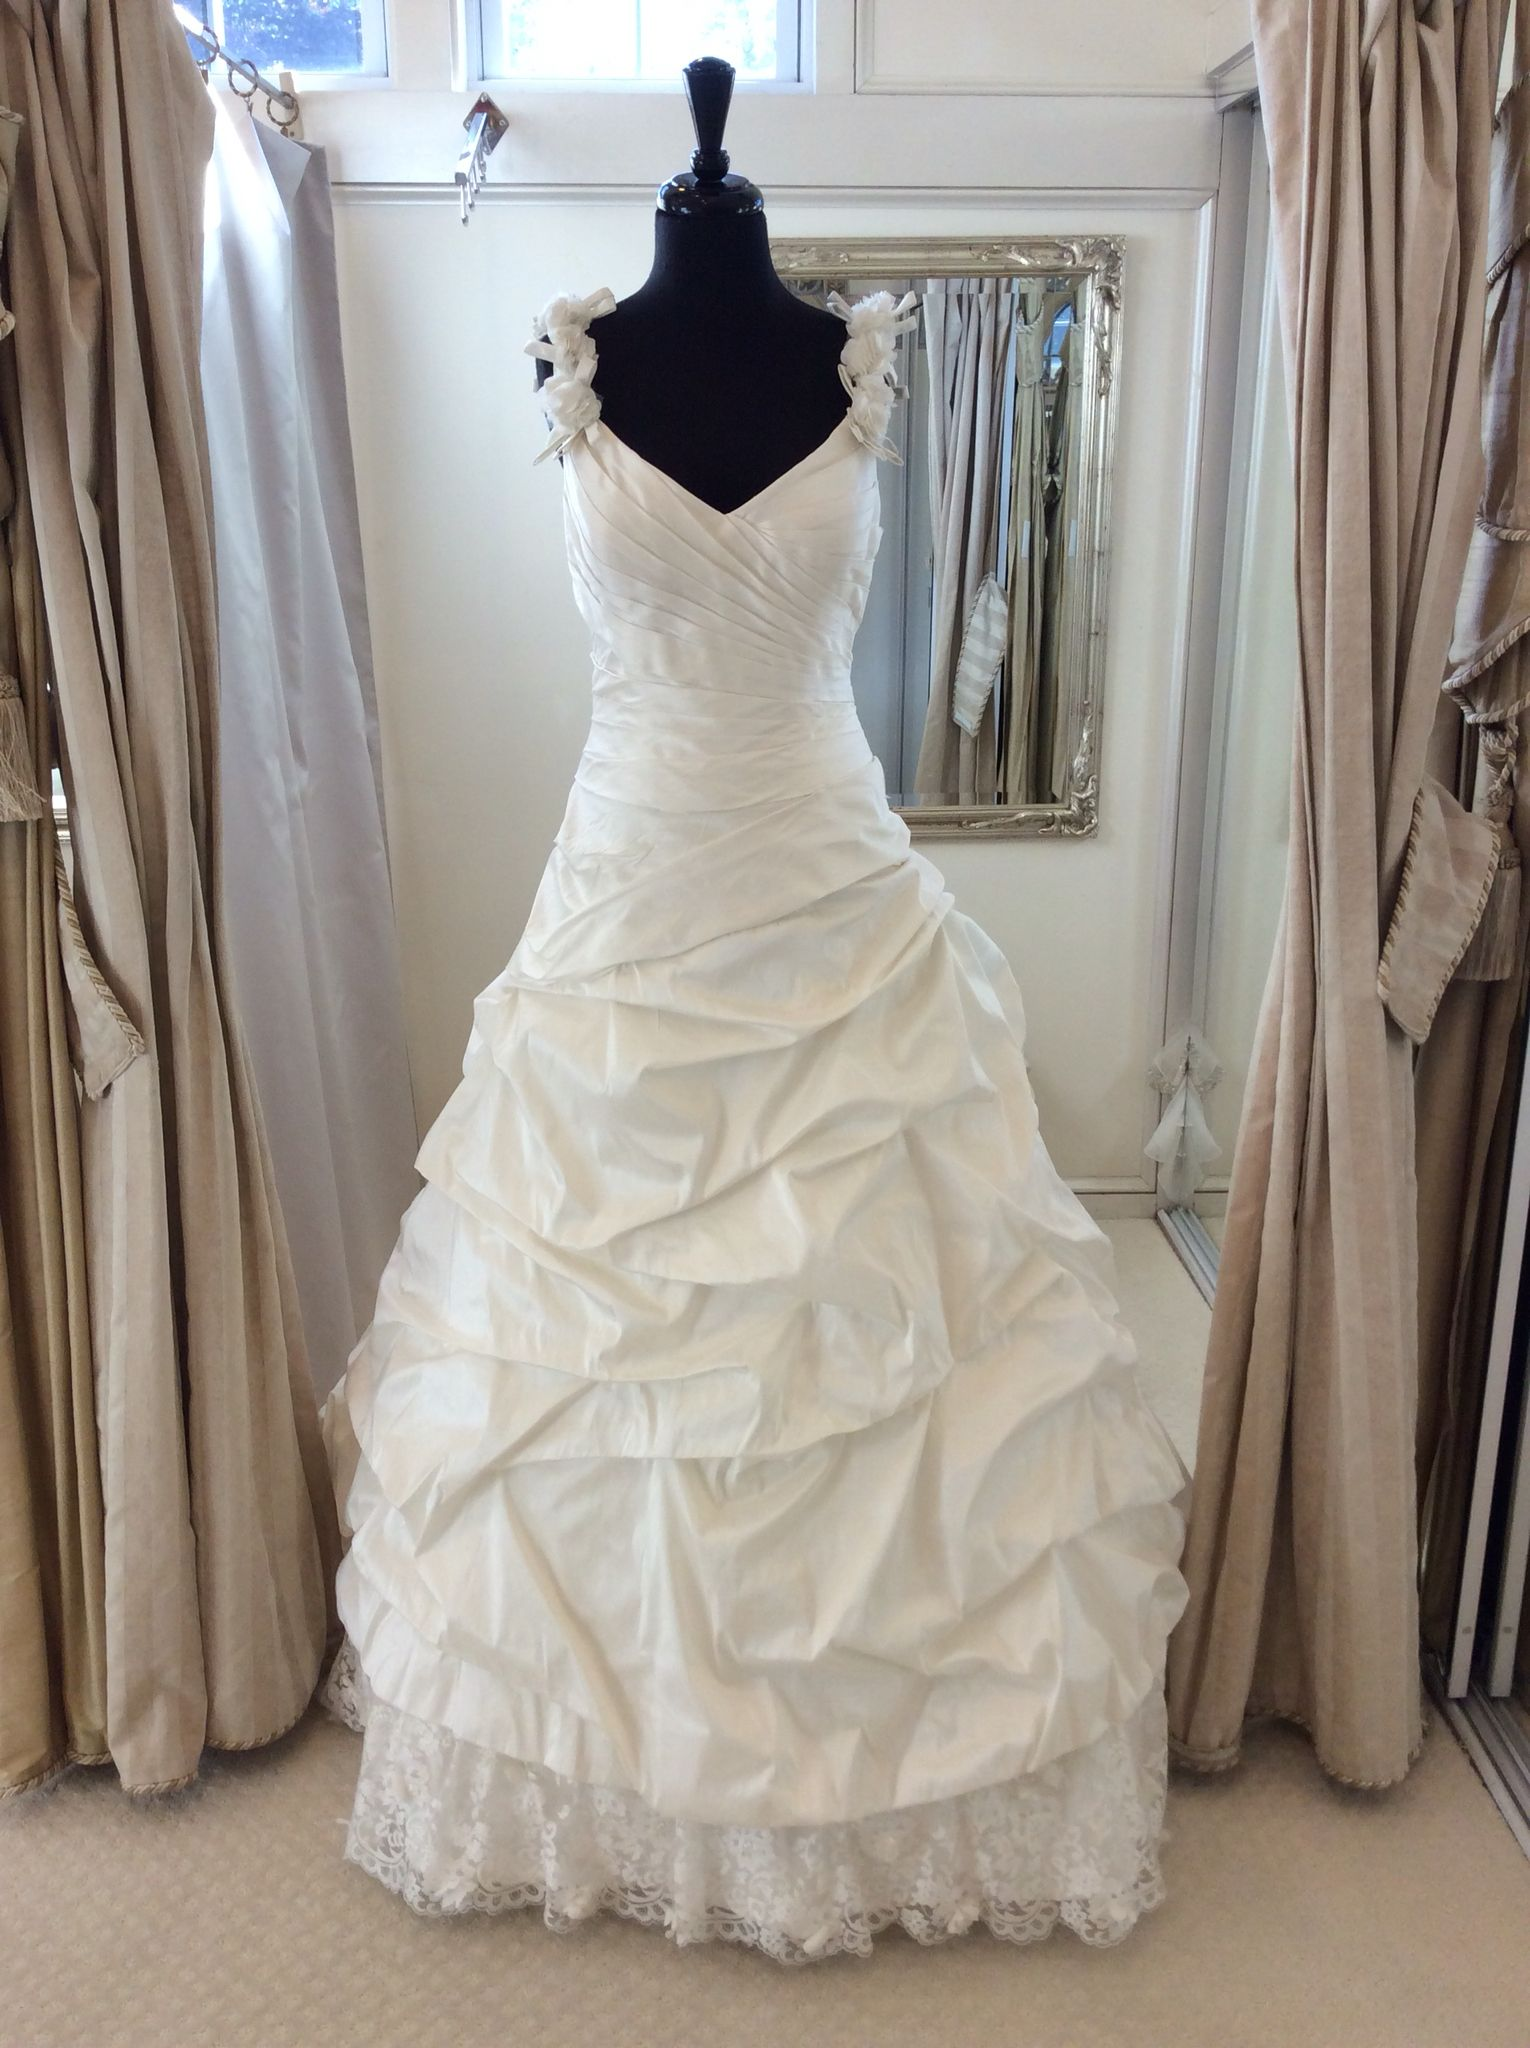 wedding ceremony wording samples%0A Wedding Dresses  Bridal Gowns  Wedding Frocks  Wedding Dressses  Wedding  Dress  Short Wedding Gowns  Bridal Dresses  Wedding Day Robes  Wedding Gowns